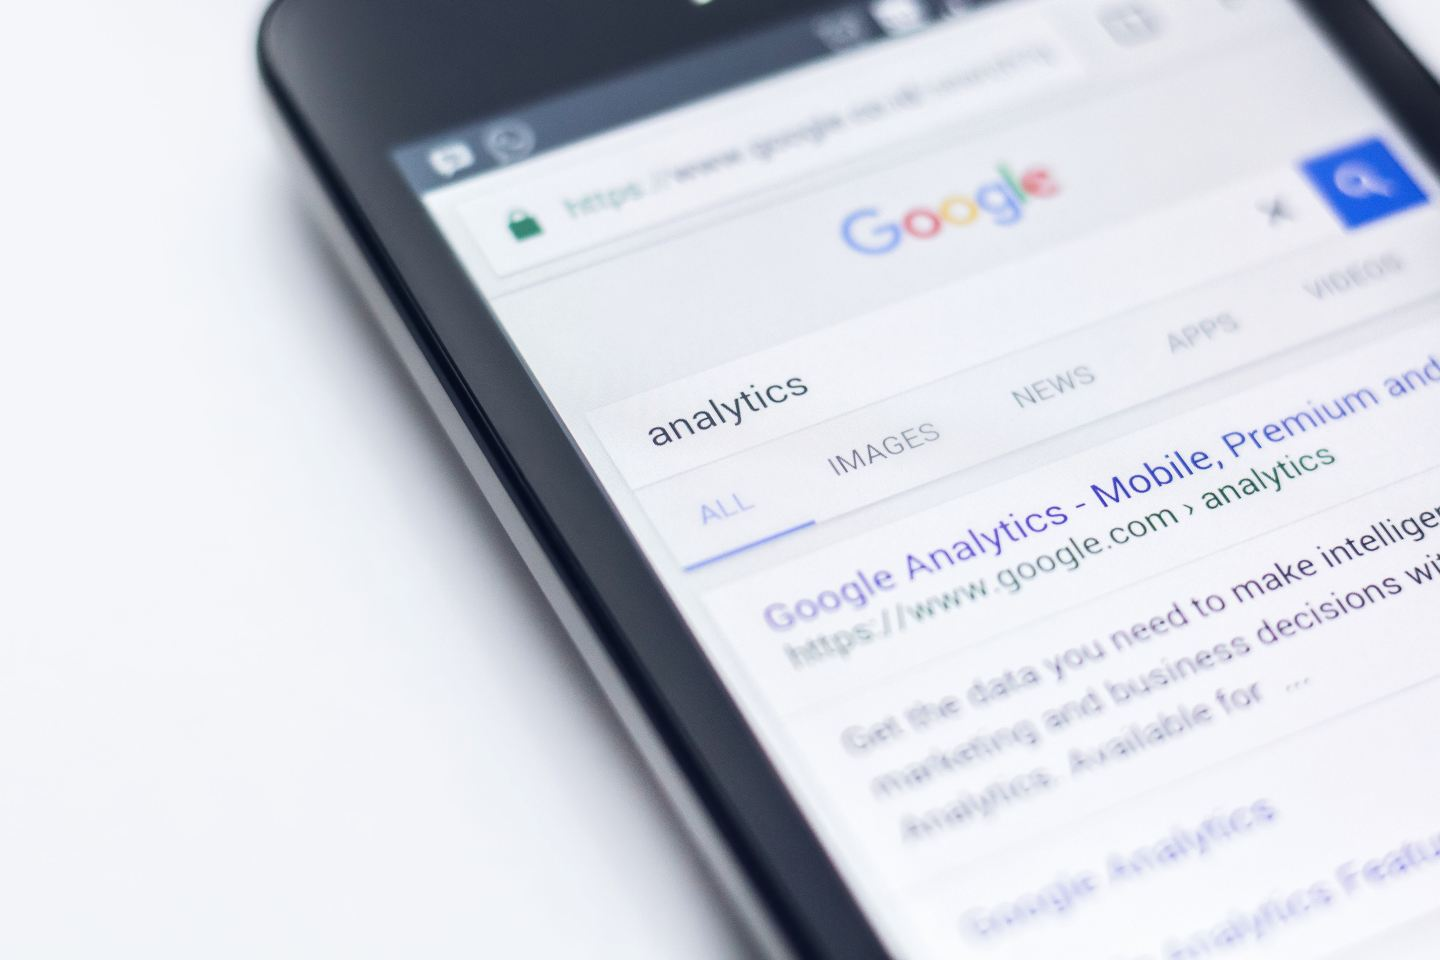 Image of Google search on smartphone screen